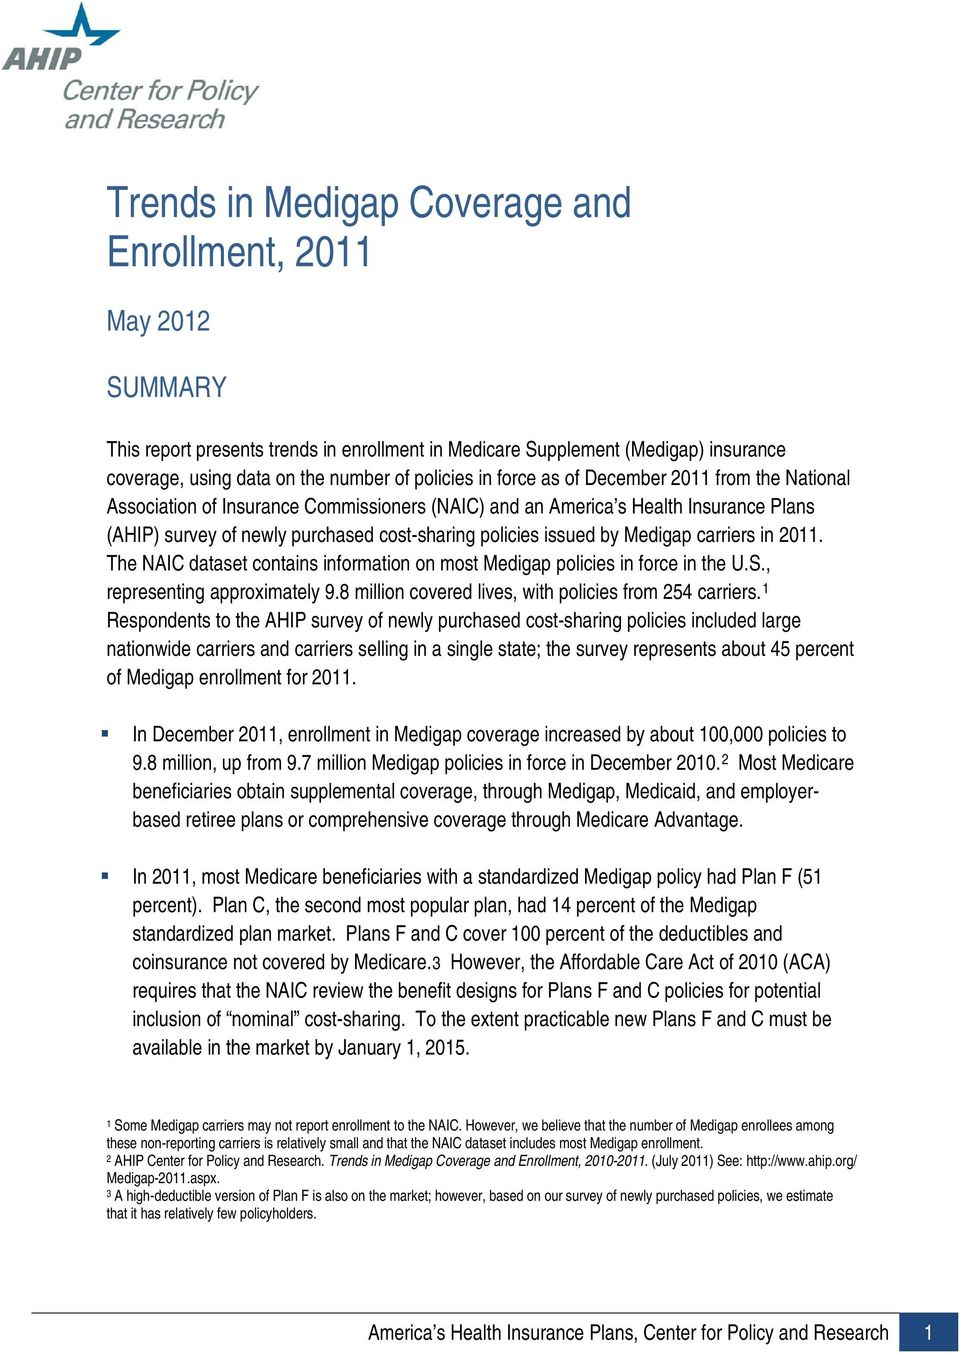 Medigap carriers in 2011. The NAIC dataset contains information on most Medigap policies in force in the U.S., representing approximately 9.8 million covered lives, with policies from 254 carriers.